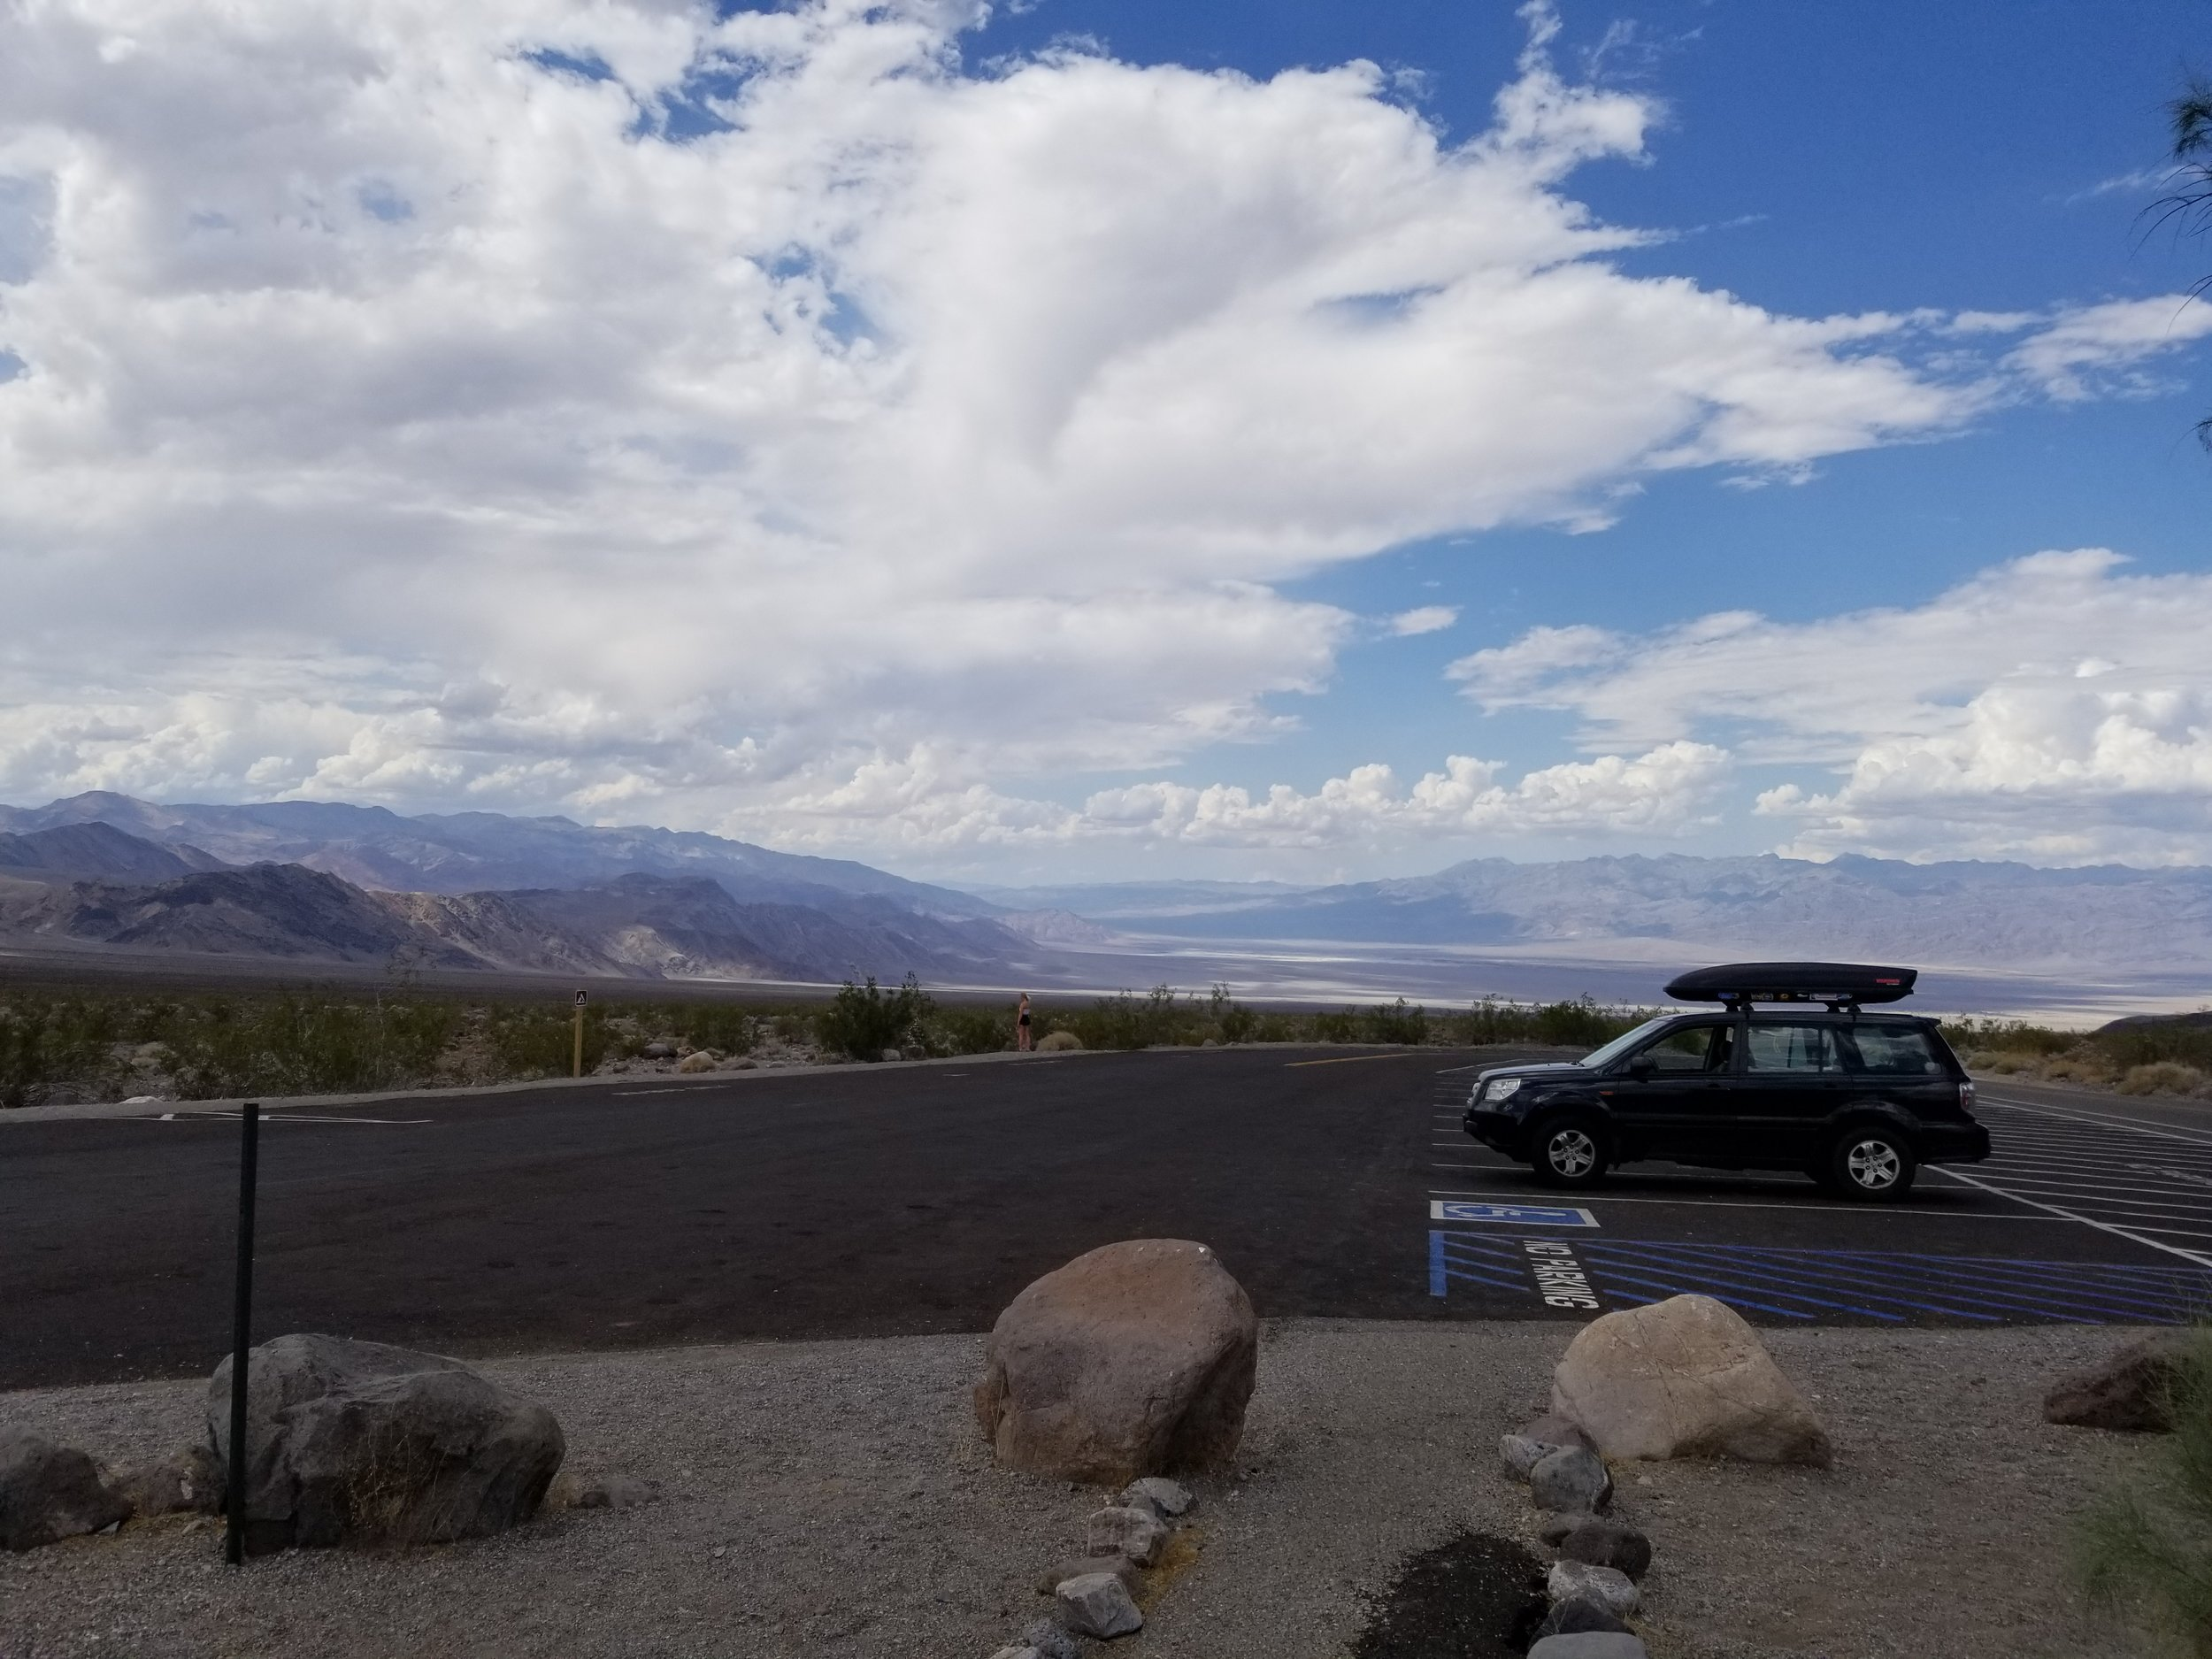 There's our little family-mobile in Death Valley.